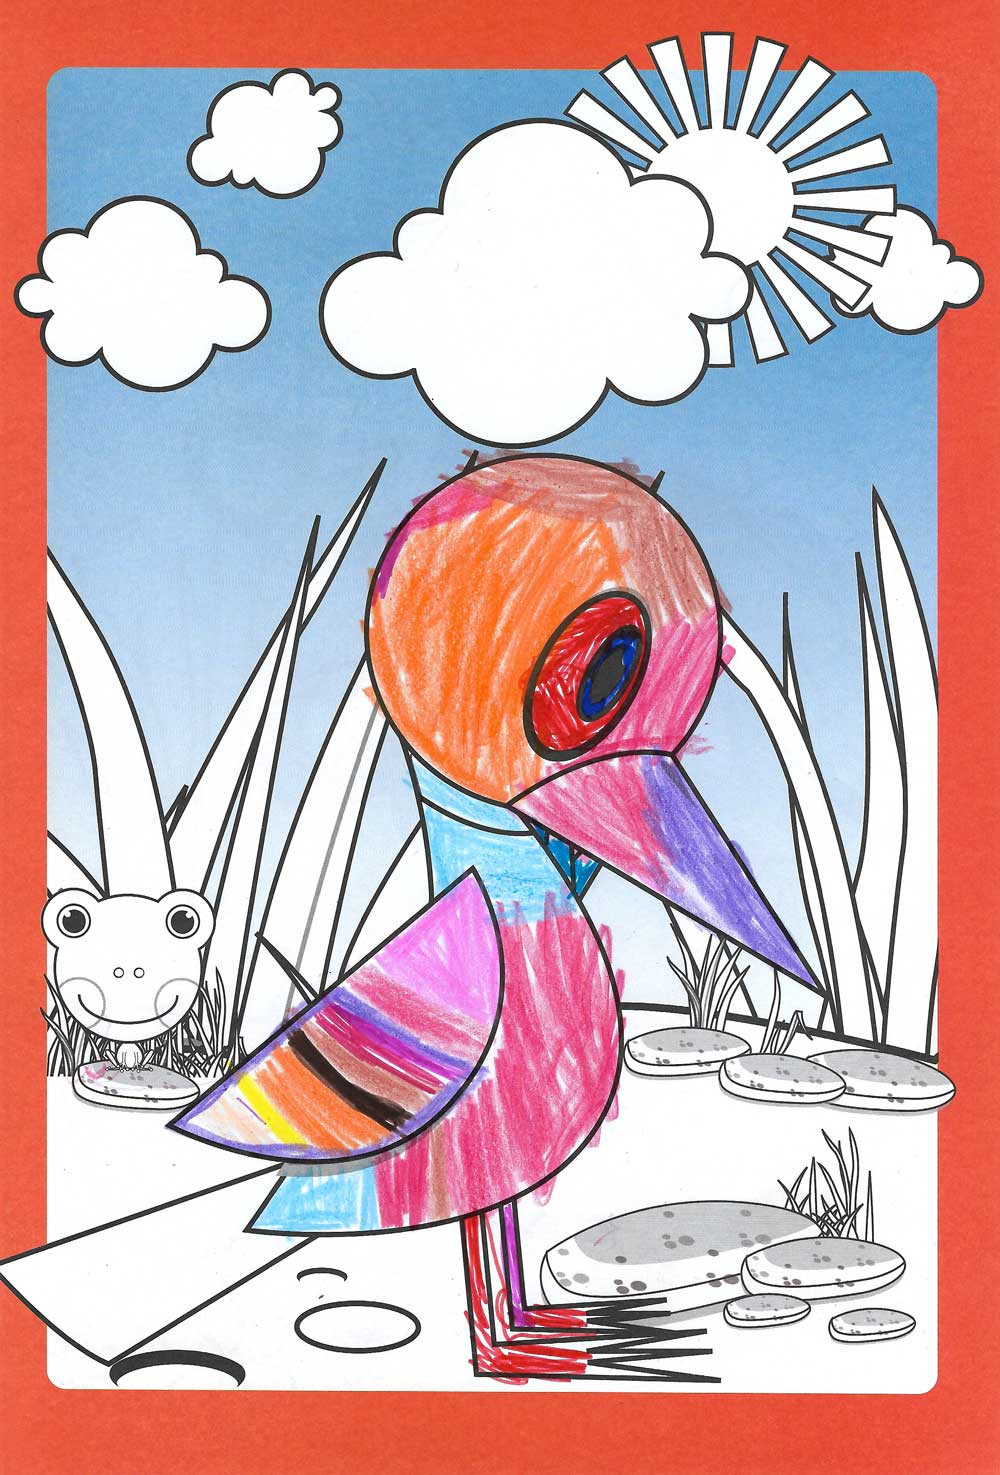 A drawing of a colorful bird standing under the sun